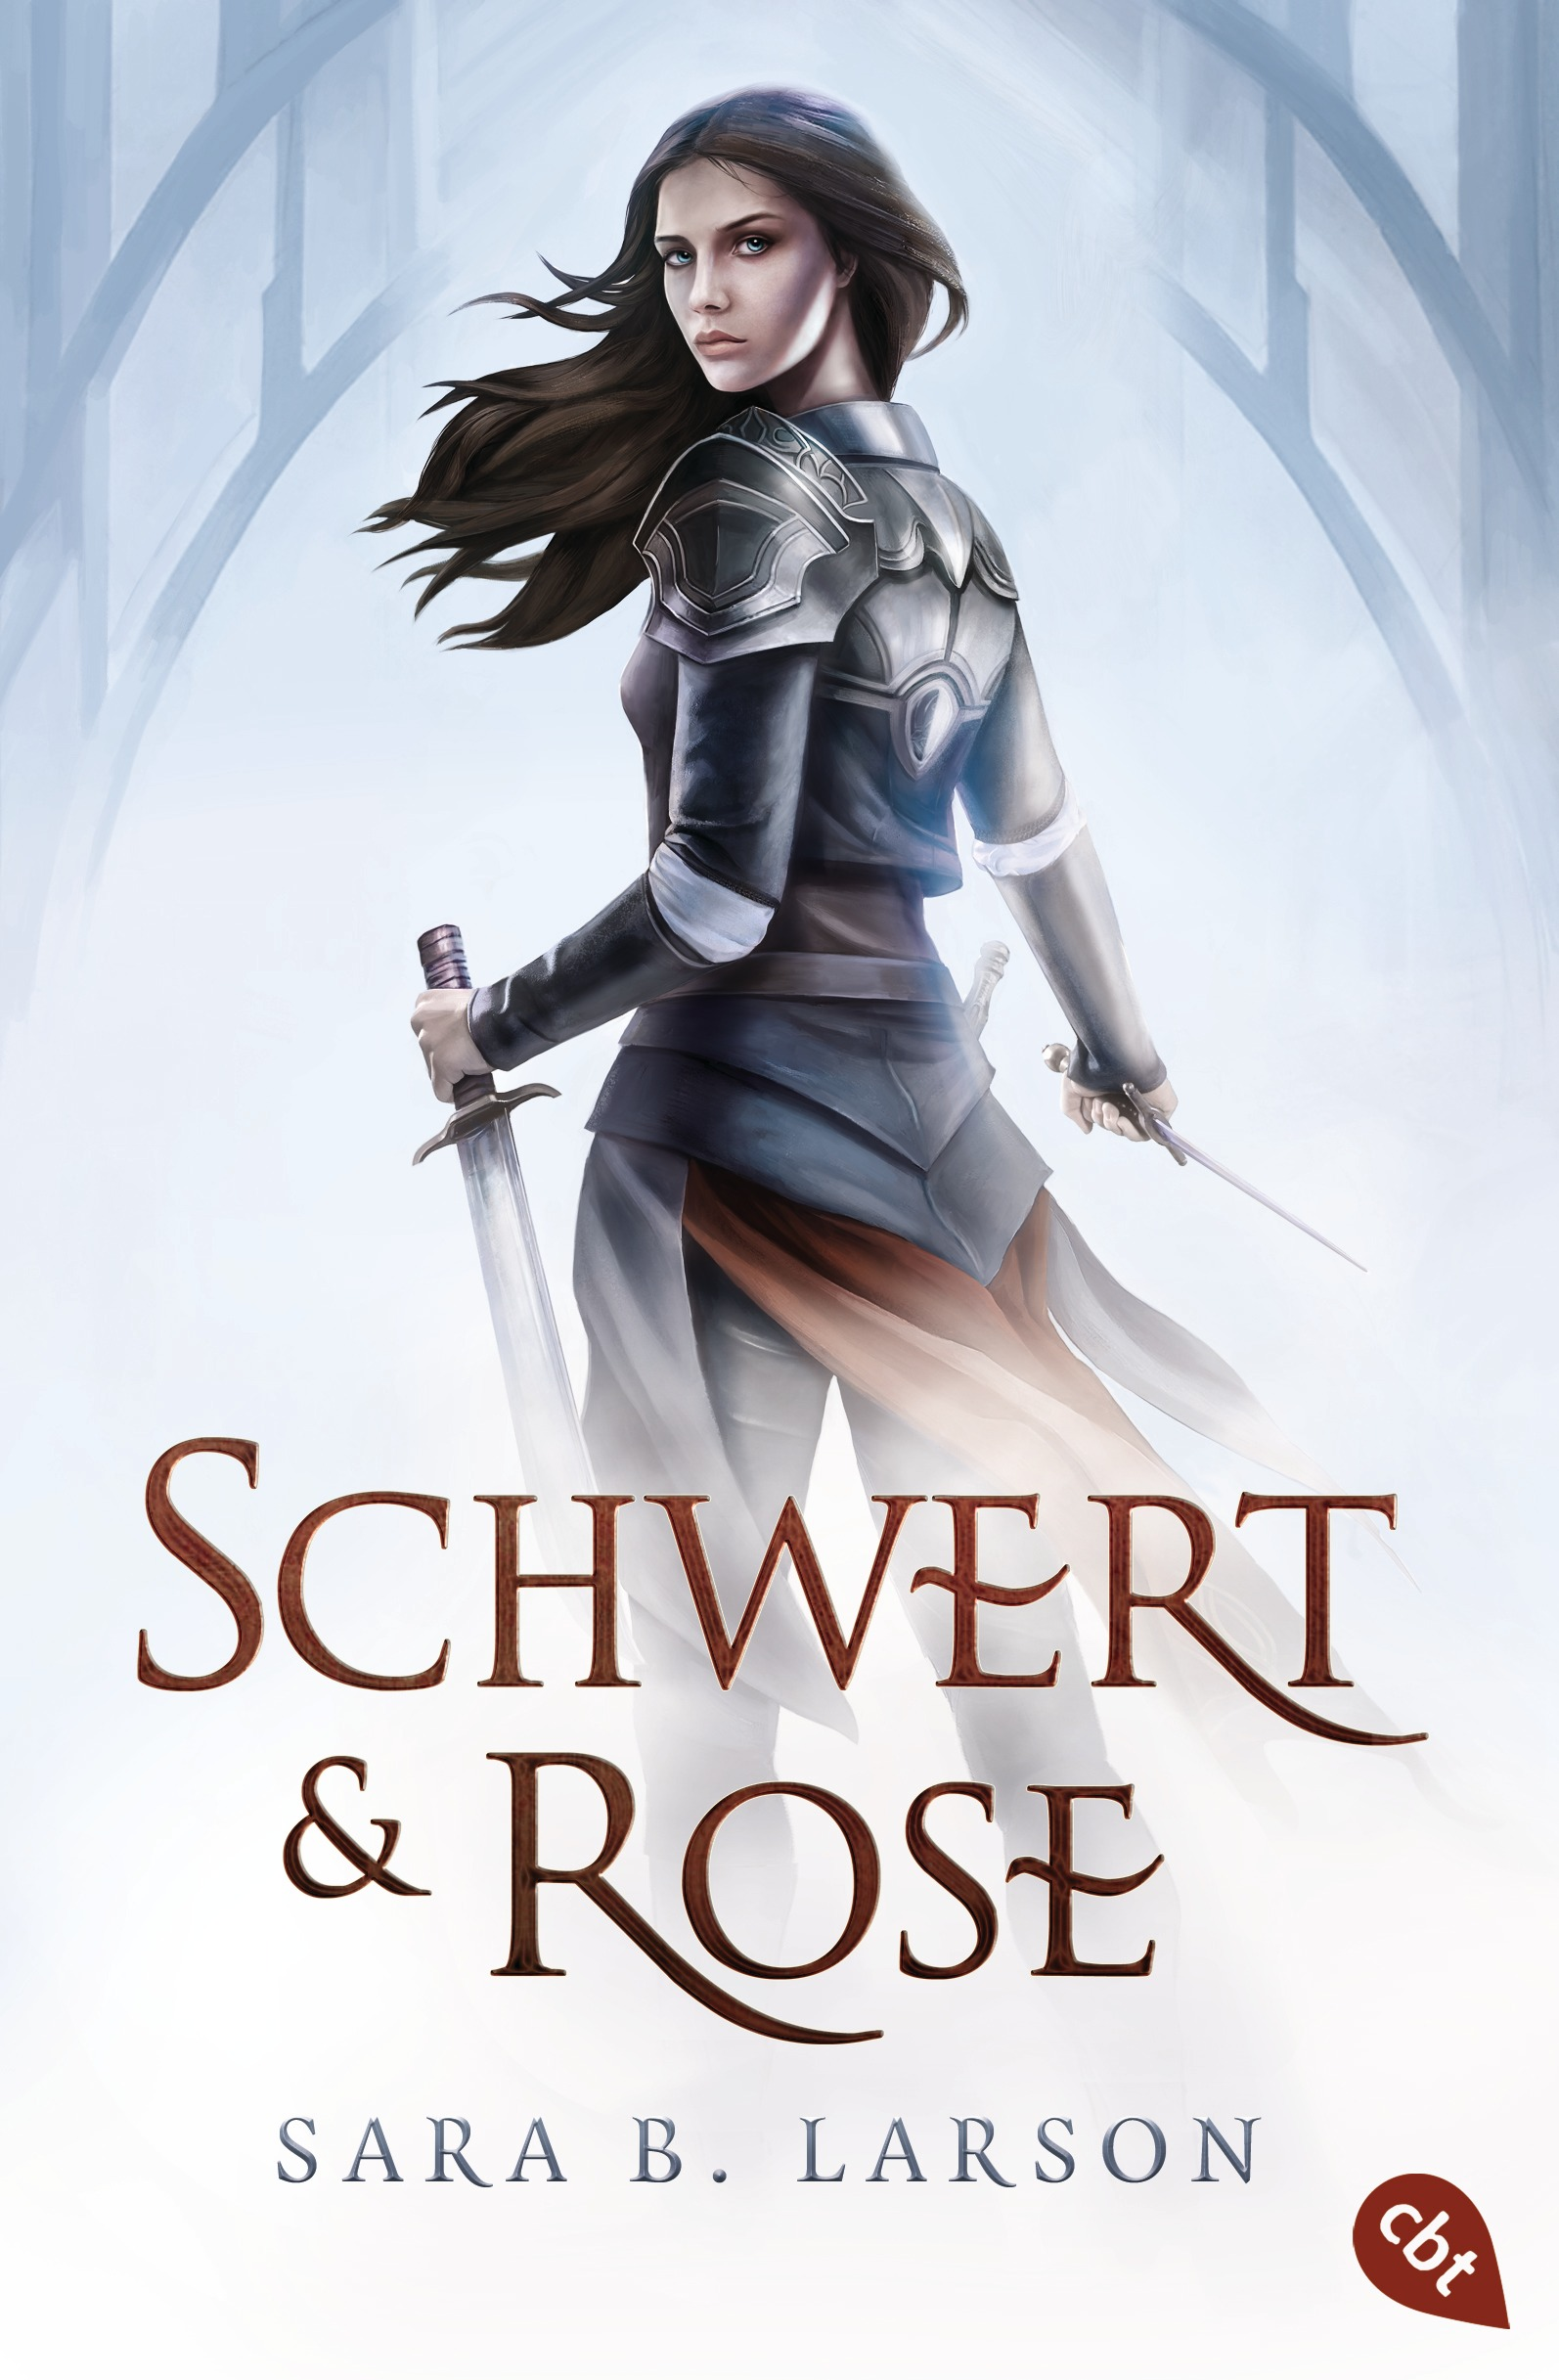 https://www.randomhouse.de/content/edition/covervoila_hires/Larson_SBSchwert_Rose_01_147627.jpg